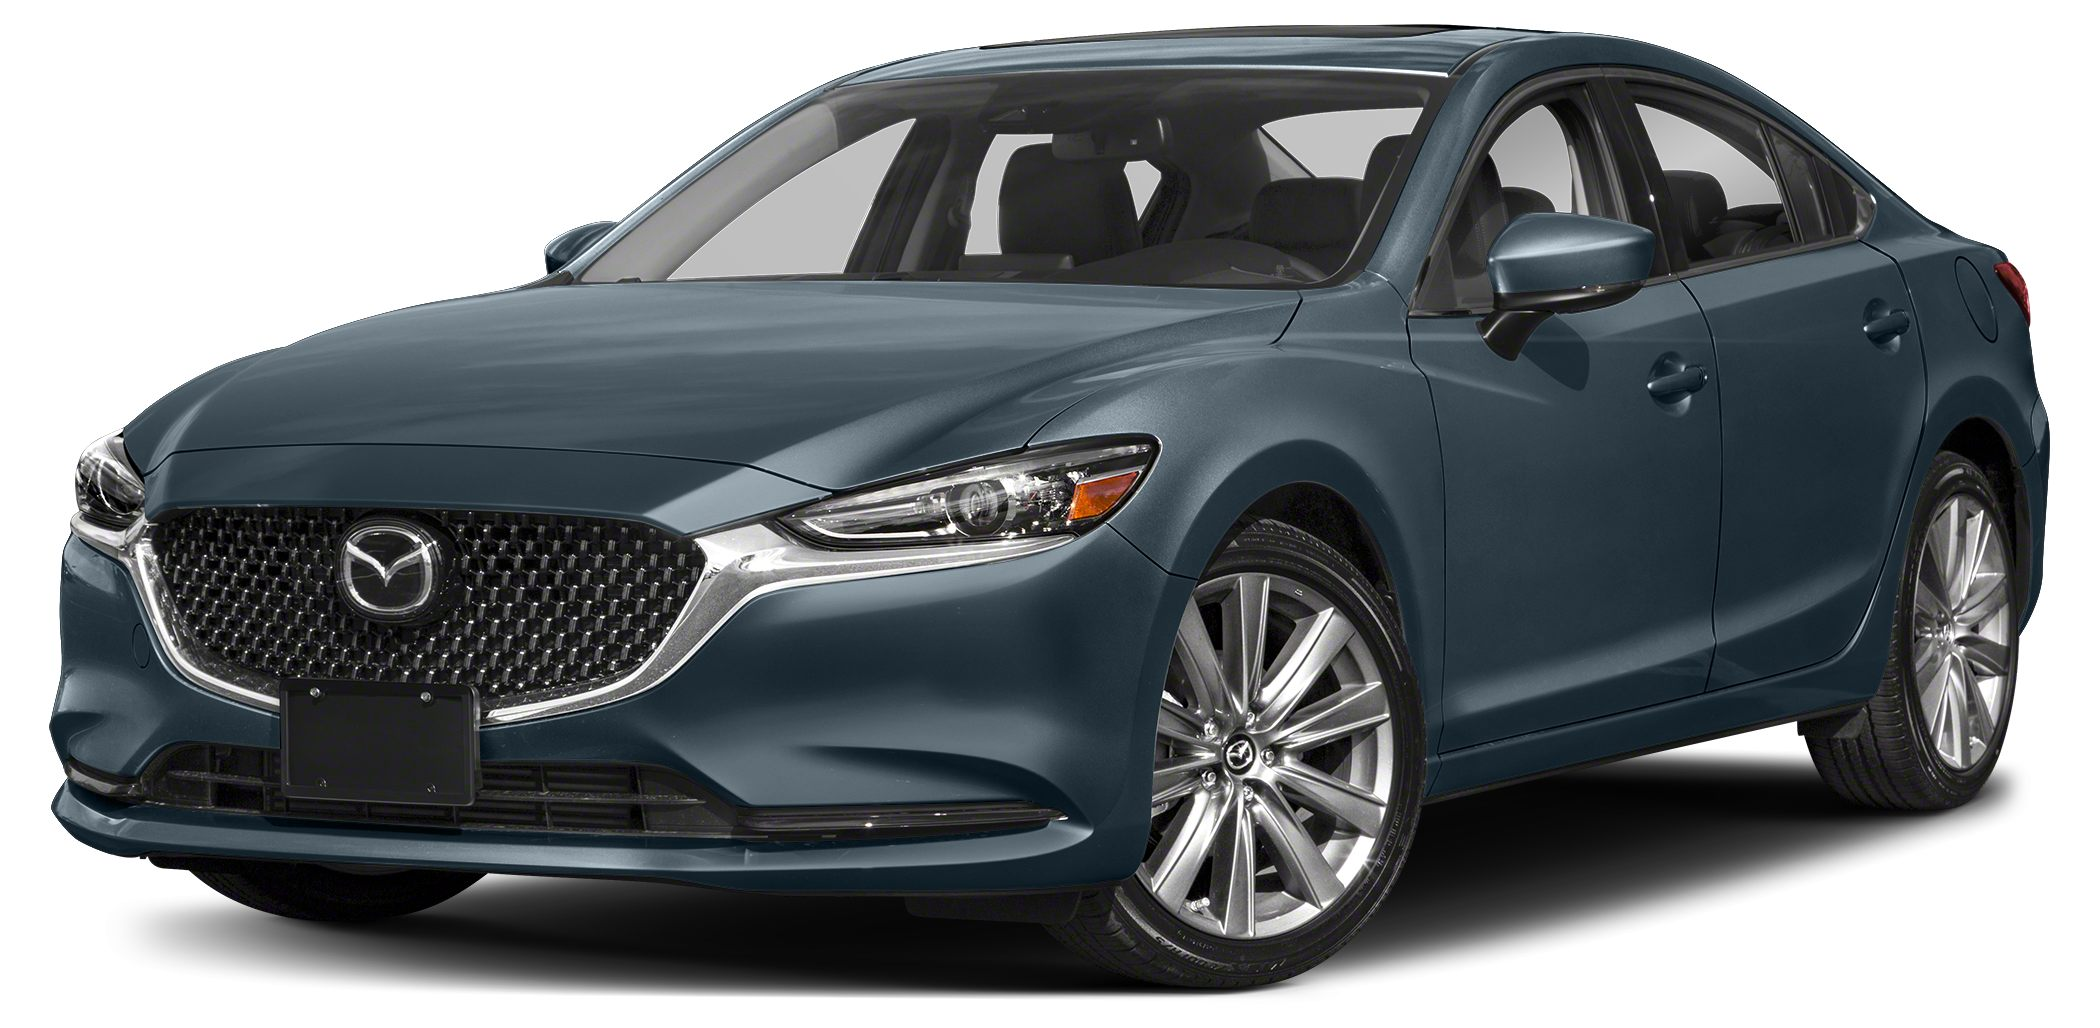 2018 Mazda MAZDA6 Grand Touring FOR THE BEST PRICING CALL FLOOD MAZDA at 888834-9833 Located in